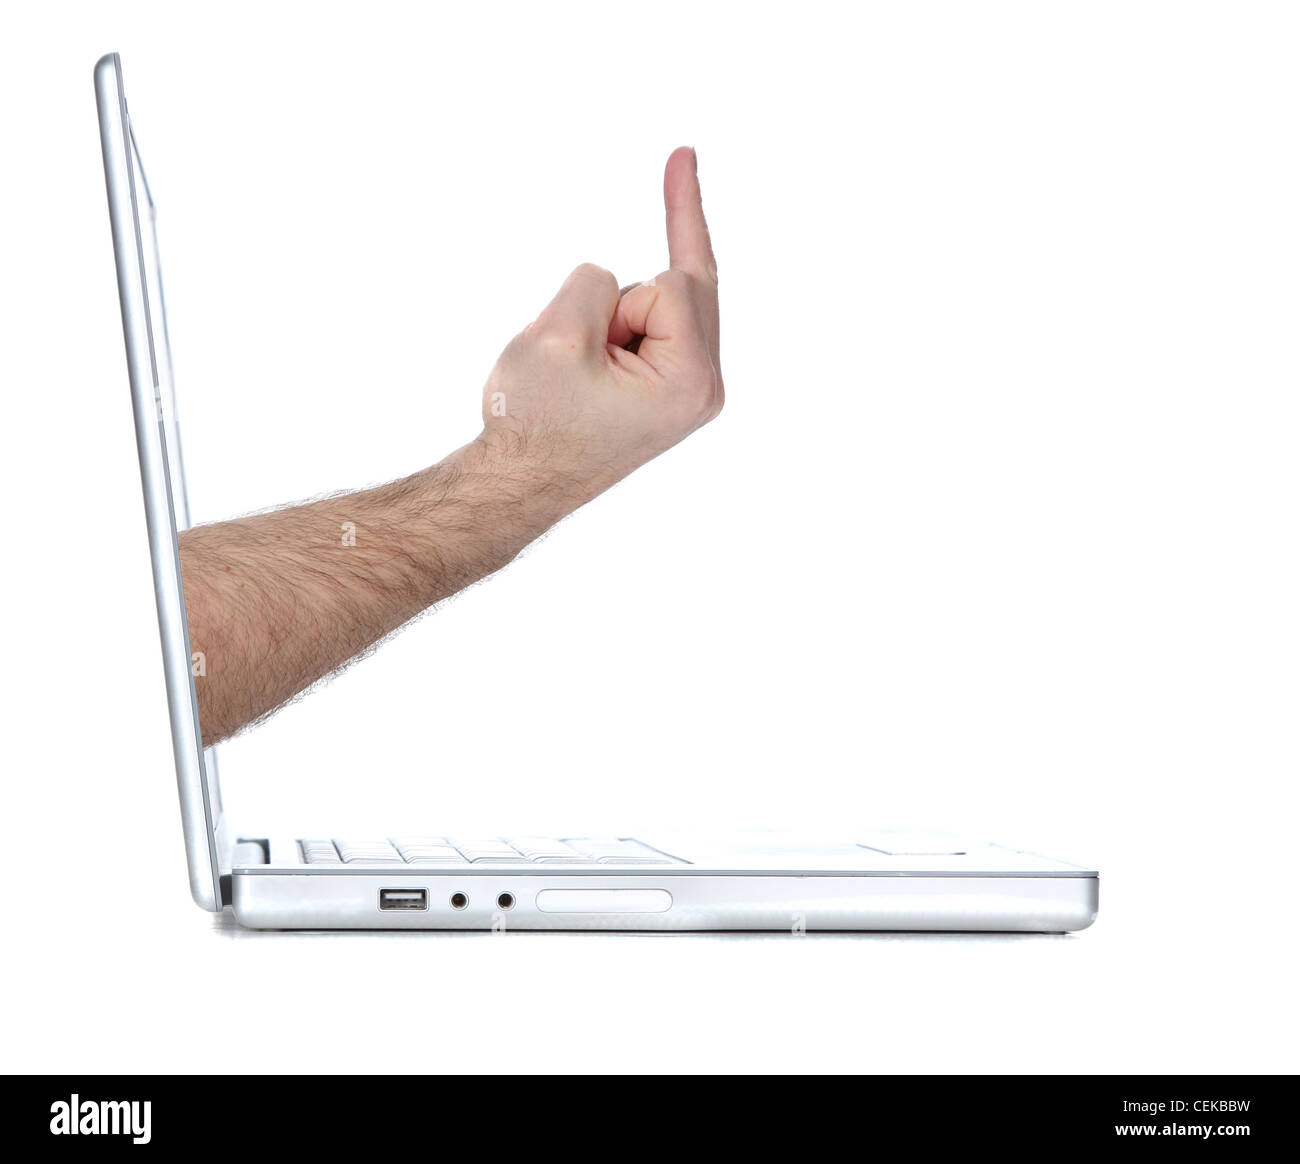 Laptop computer flipping a user the bird - Stock Image